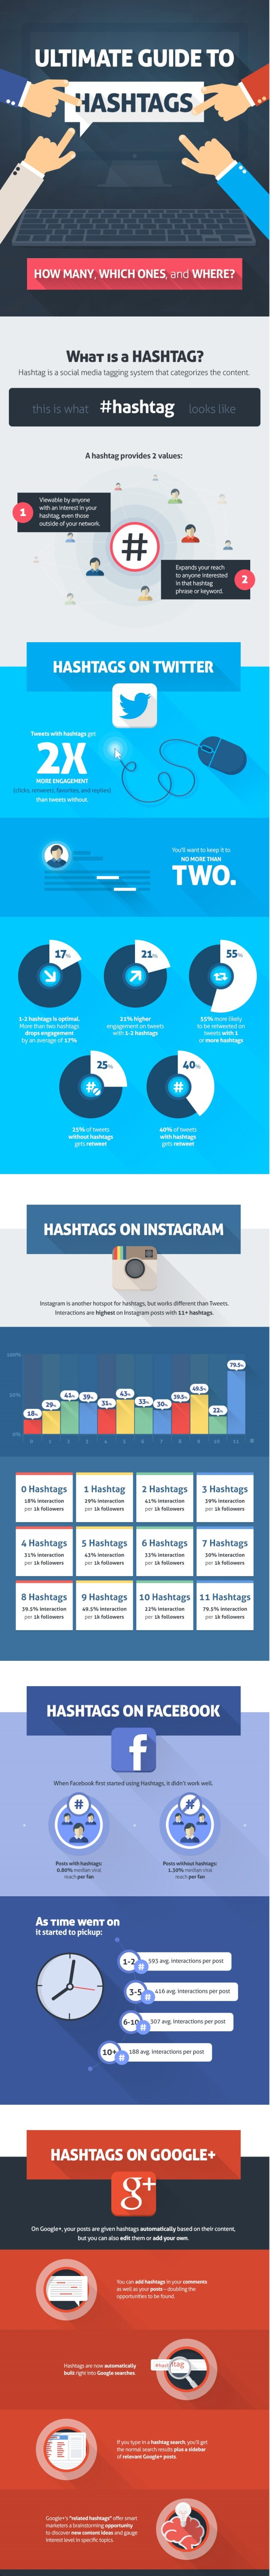 the-ultimate-guide-to-hashtag_54eef41a93f6c